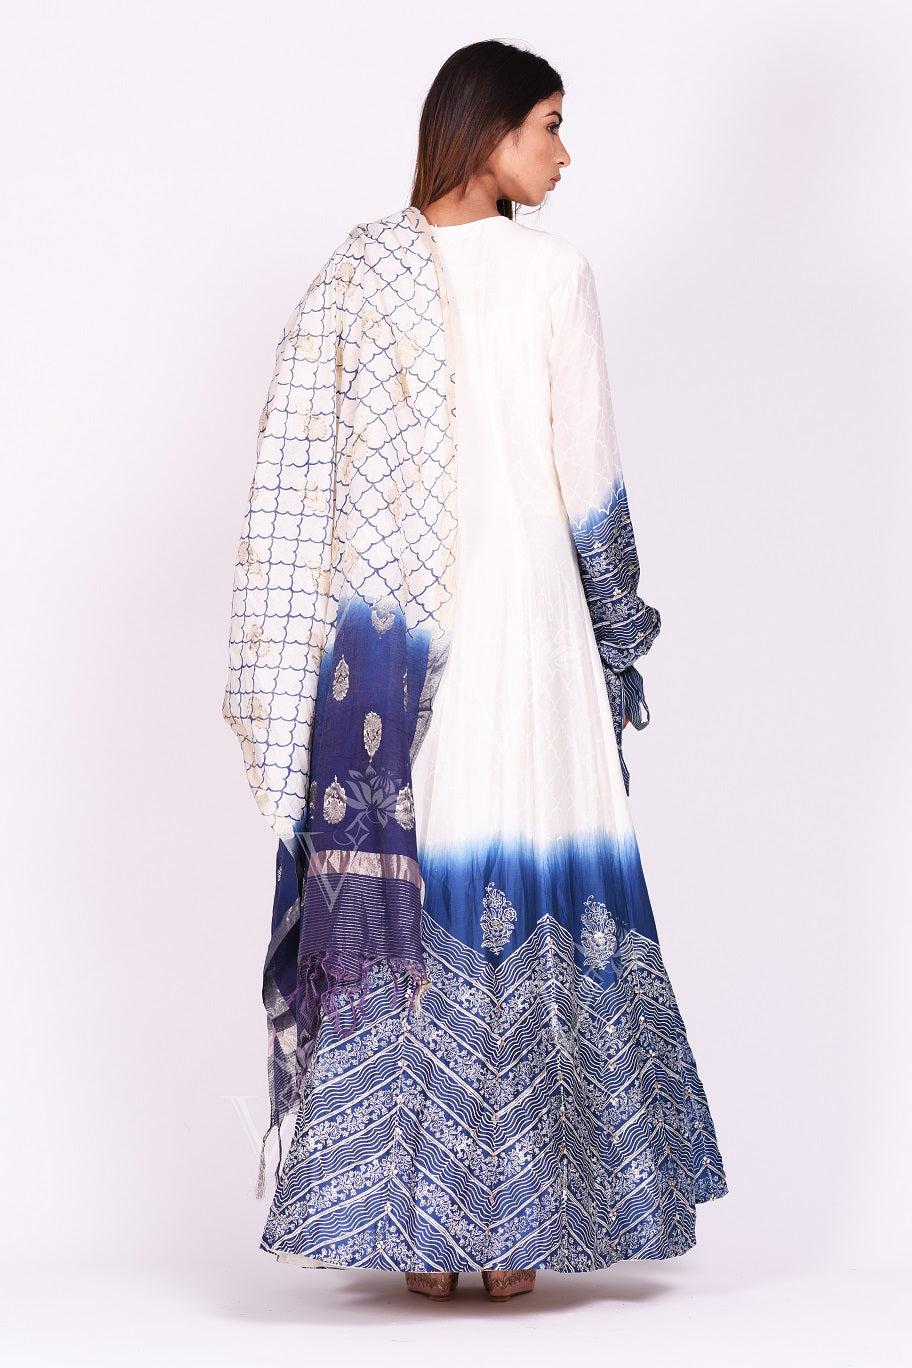 Shop ravishing white and blue printed chanderi silk Anarkali suit online in USA. Make a stunning fashion statement at weddings and special occasions with an exquisite collection of designer Anarkali suits, designer lehengas, Indian designer dresses from Pure Elegance Indian fashion store in USA. -back